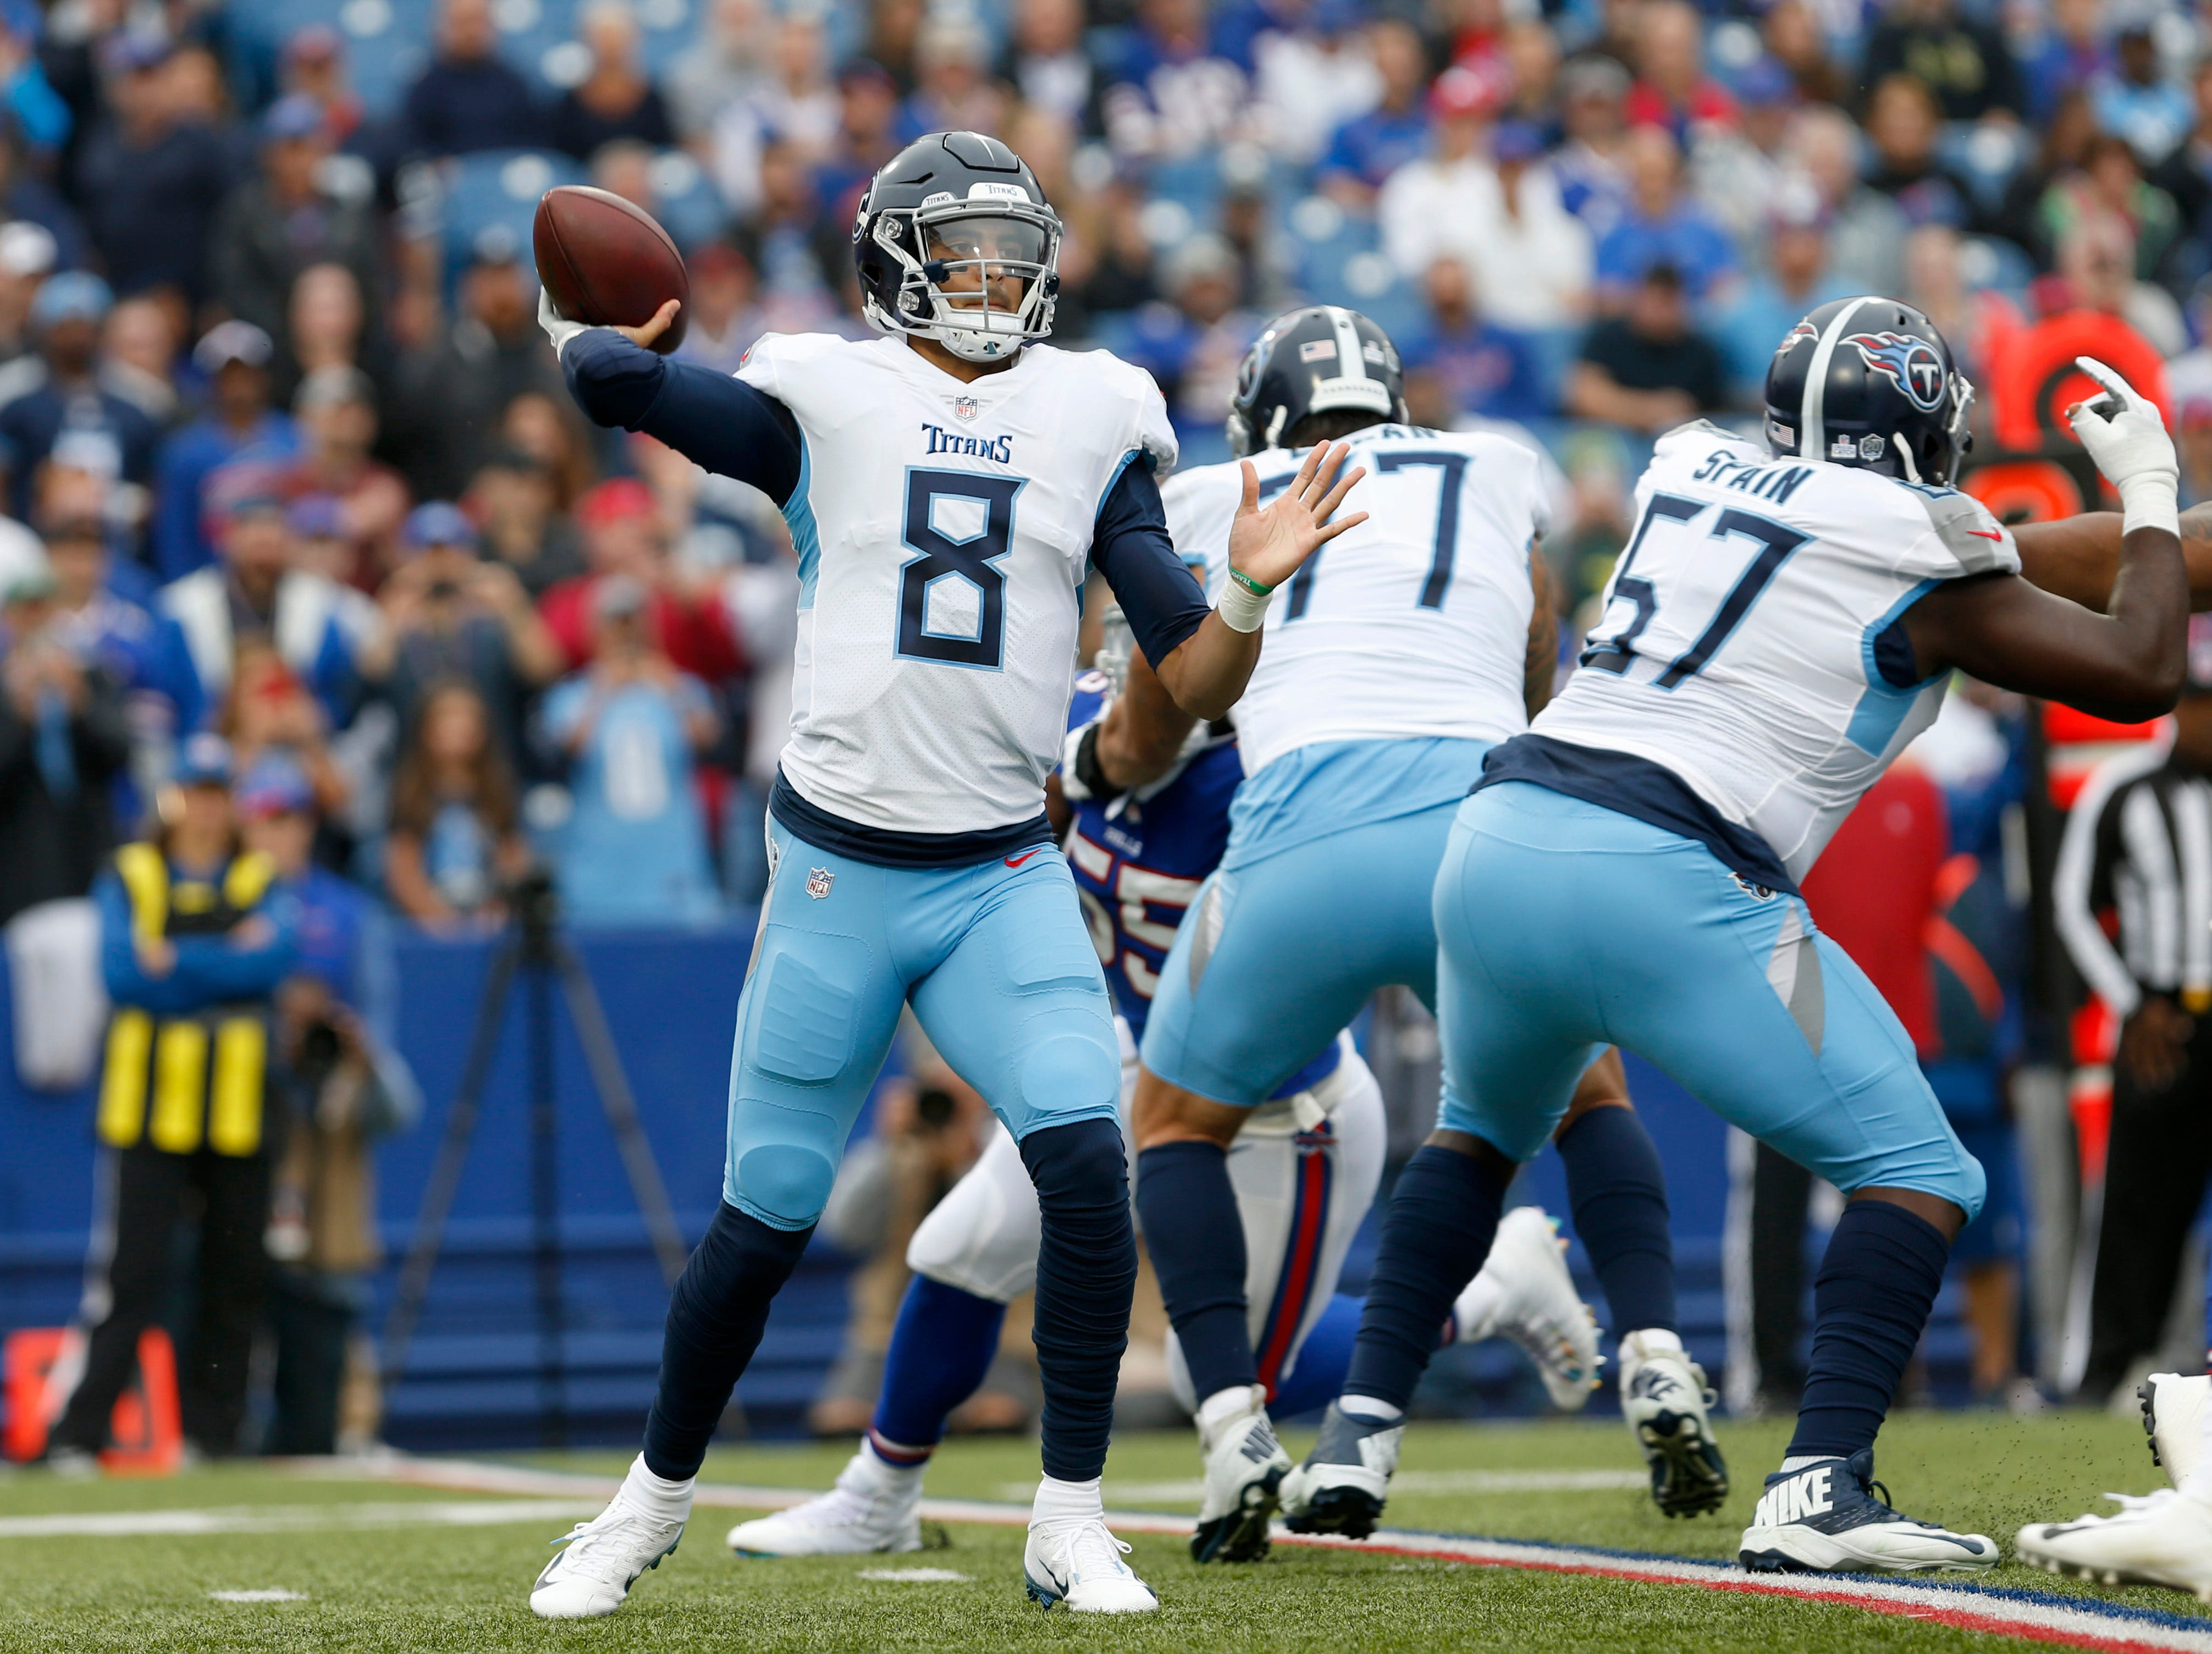 Oct 7, 2018; Orchard Park, NY, USA; Tennessee Titans quarterback Marcus Mariota (8) throws a pass during the first half against the Buffalo Bills at New Era Field.